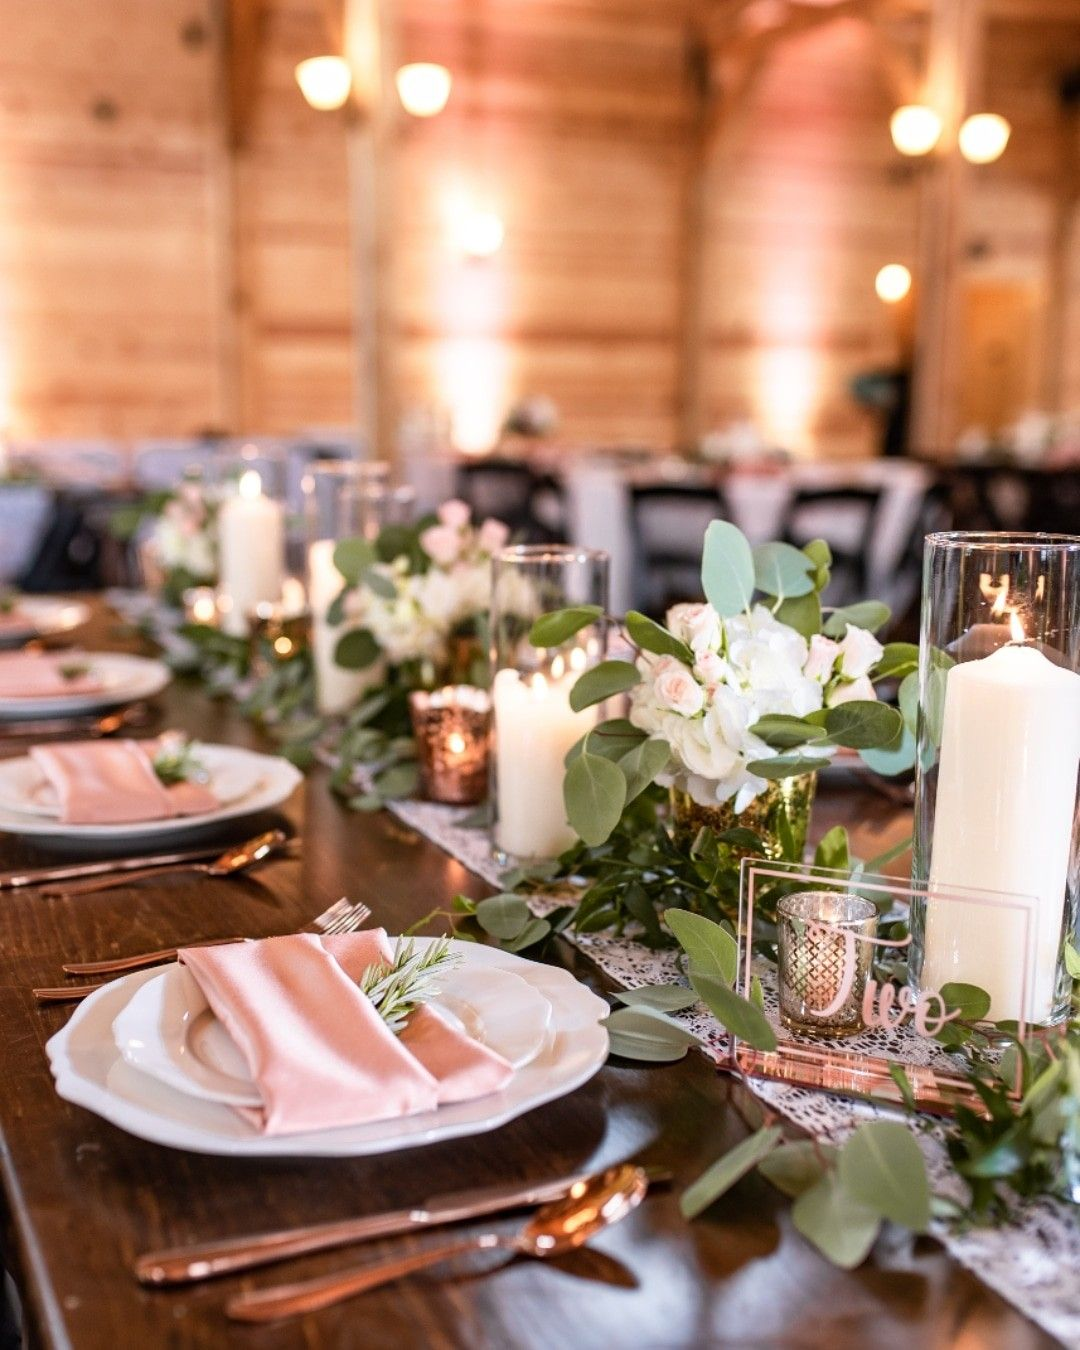 Pink And White Barn Wedding Decor With Rose Gold Elements Acrylic Table Numbers Candl Wedding Floral Centerpieces Wedding Table Centerpieces Farm Table Decor